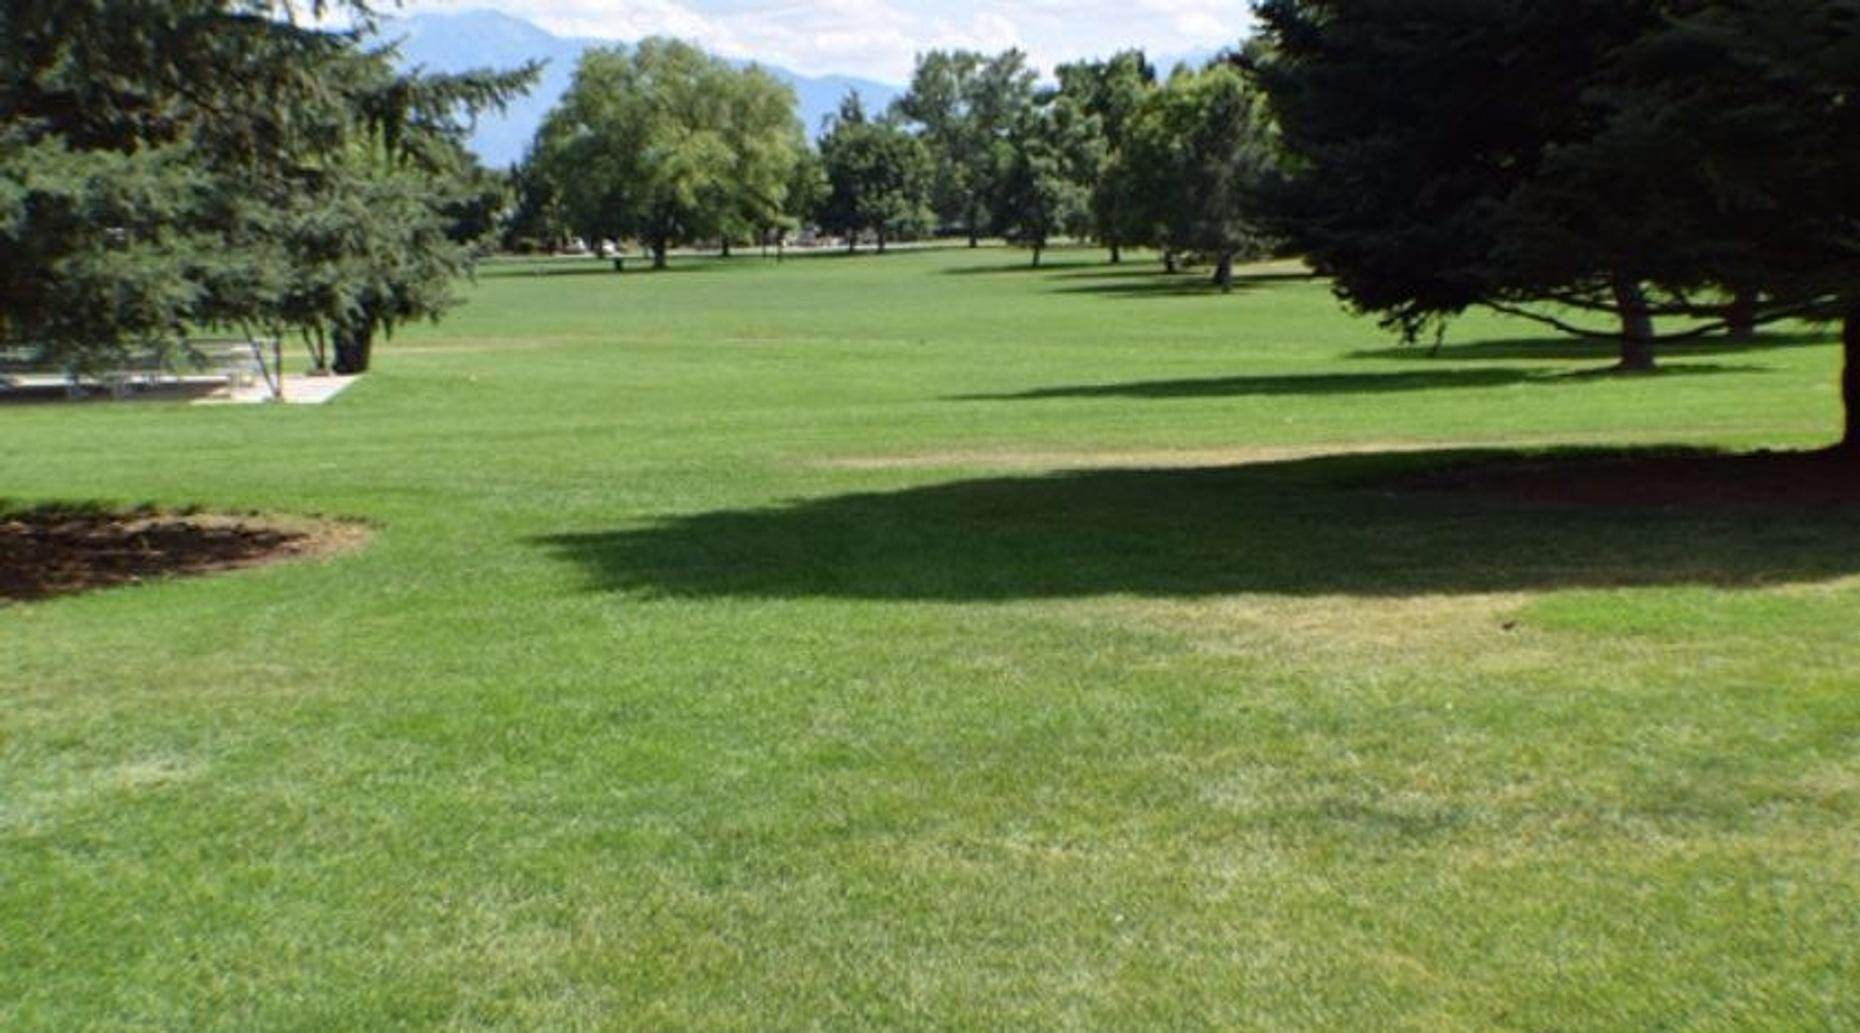 Drone Racing in the Park in Provo